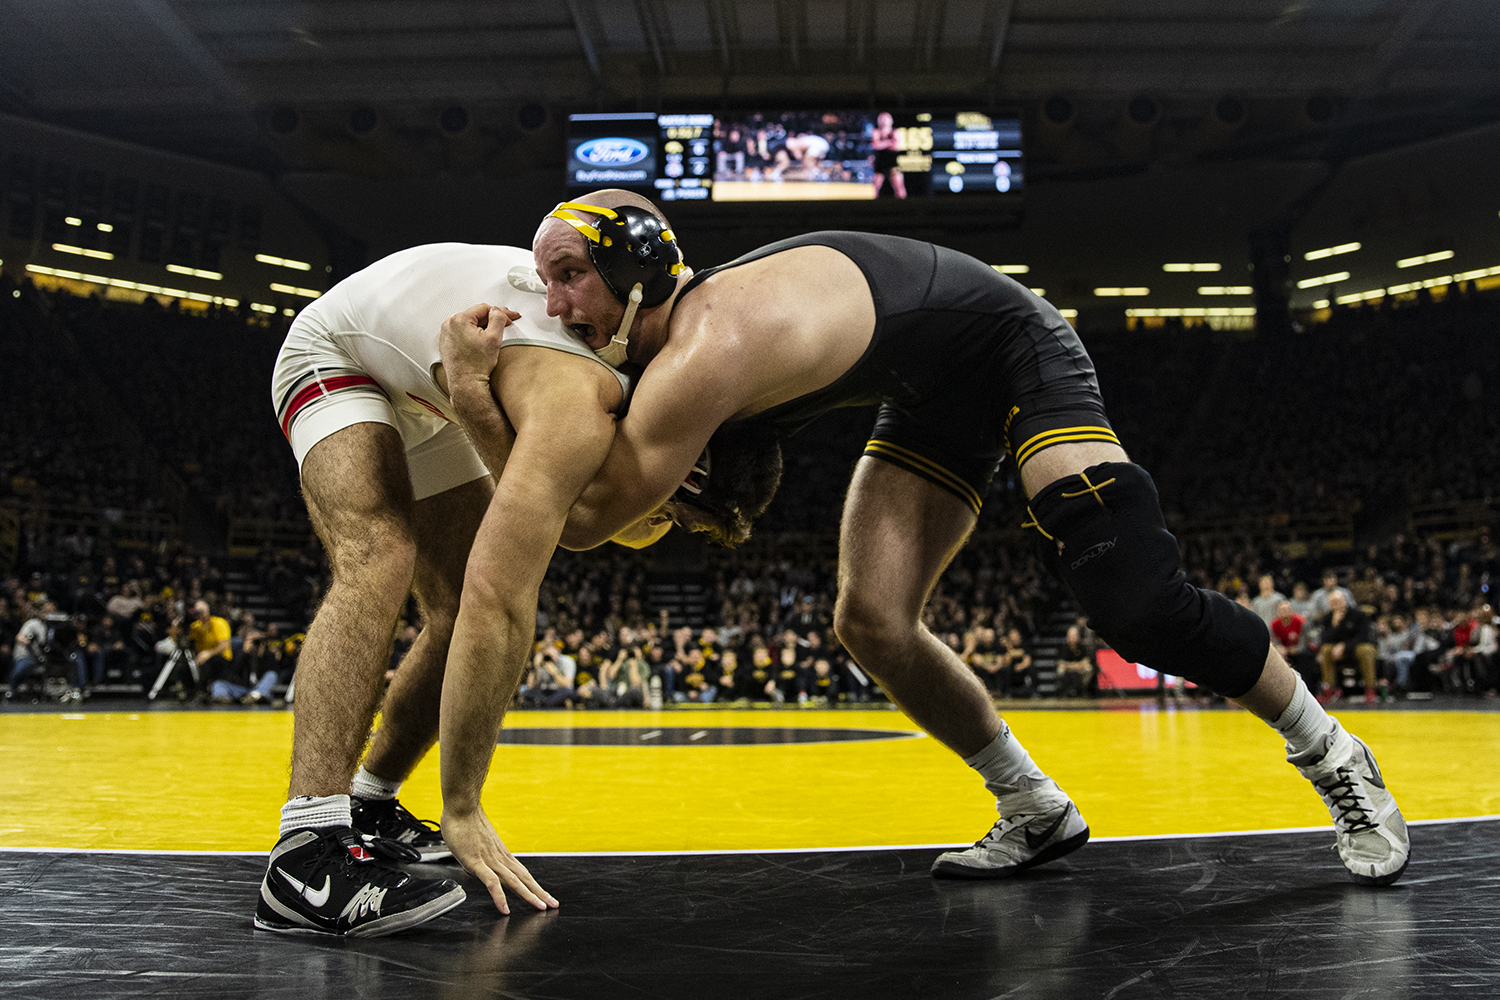 IowaÕs 165-pound Alex Marinelli wrestles Ohio StateÕs Ethan Smith during a wrestling dual meet between No. 1 Iowa and No. 4 Ohio State at Carver-Hawkeye Arena on Friday, Jan. 24, 2020. No. 2 Marinelli defeated No. 13 Smith by decision, 14-10.